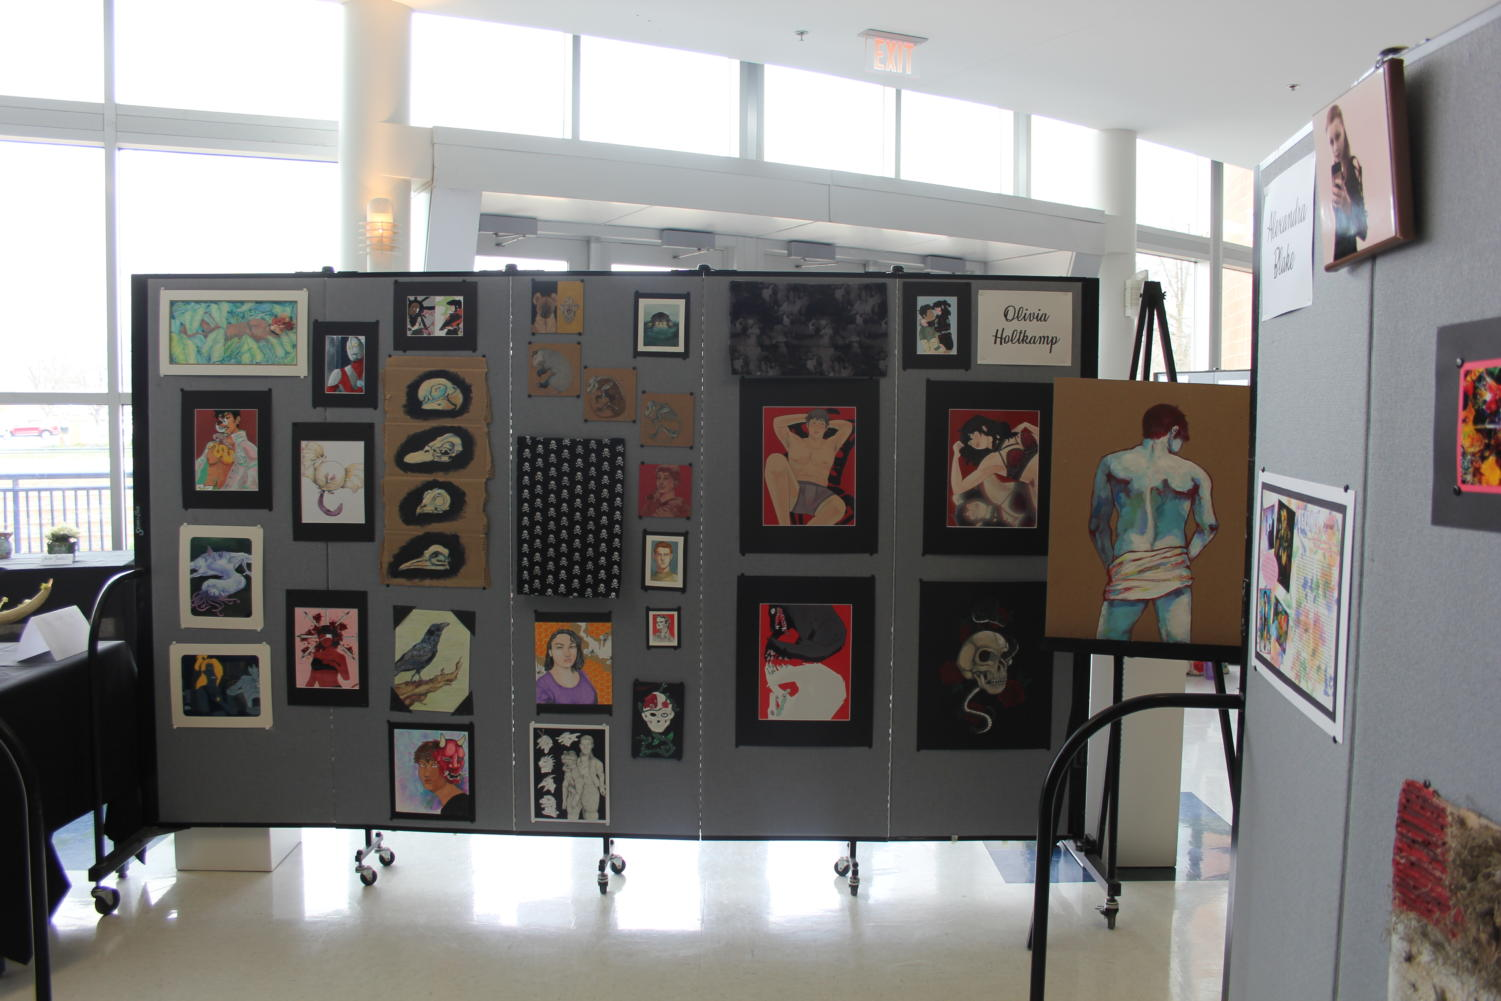 Various+pieces+of+people+and+animals+are+displayed+on+senior+Olivia+Holtkamp%E2%80%99s+board.+%E2%80%9CMy+imagination+just+kind+of+goes+crazy+all+the+time%2C+so+it%E2%80%99s+all+just+a+mix-match+of+crazy+ideas+that+I+have+that+I+want+to+put+somewhere+other+than+my+mind%2C%E2%80%9D+Holtkamp+said.%0A